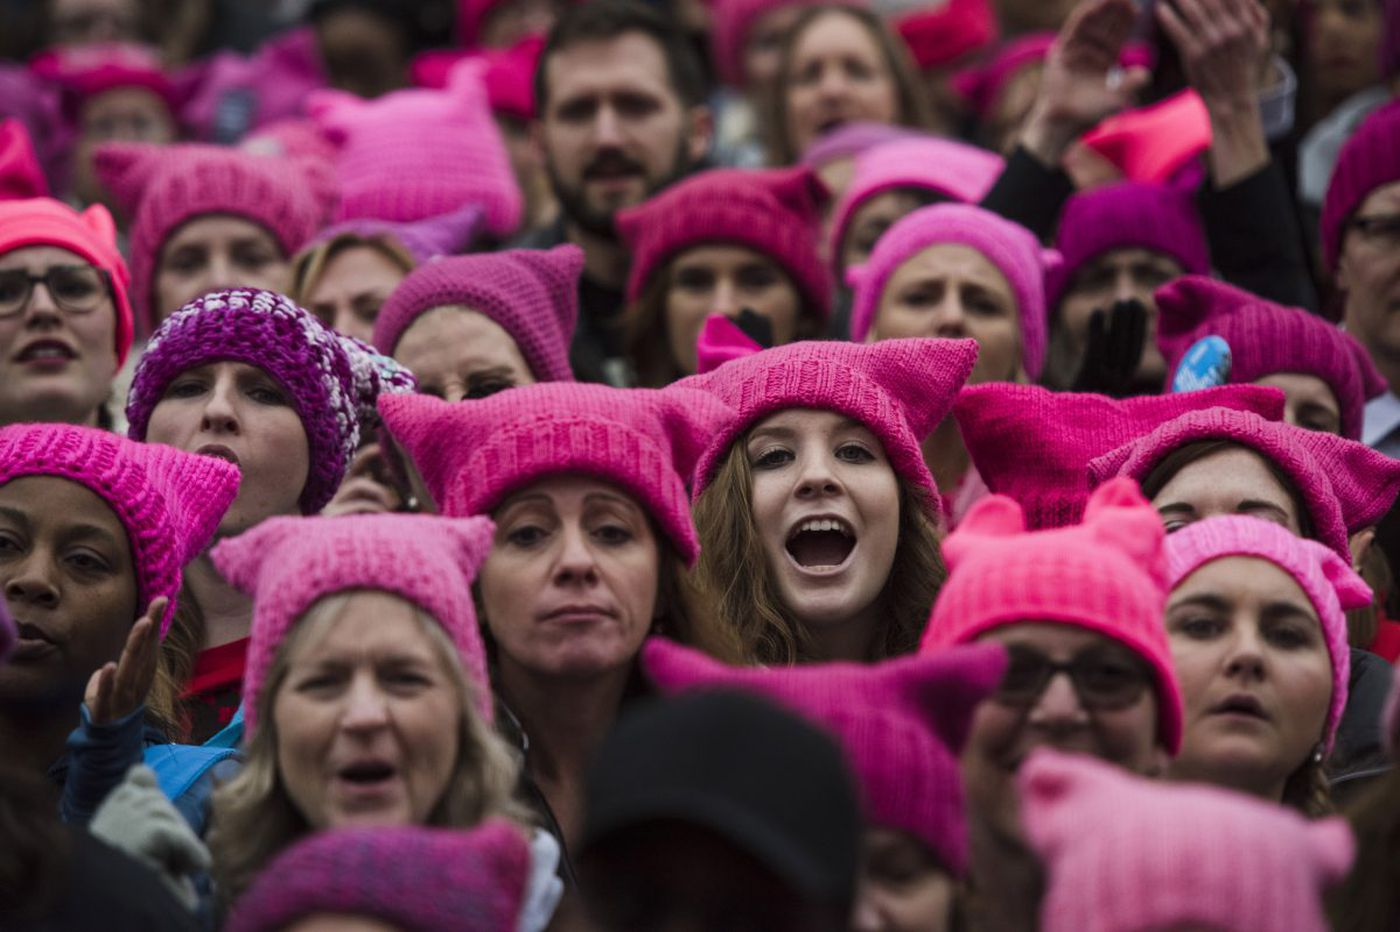 Some say Women's March pink hats aren't inclusive. Philly organizers say wear what you want.